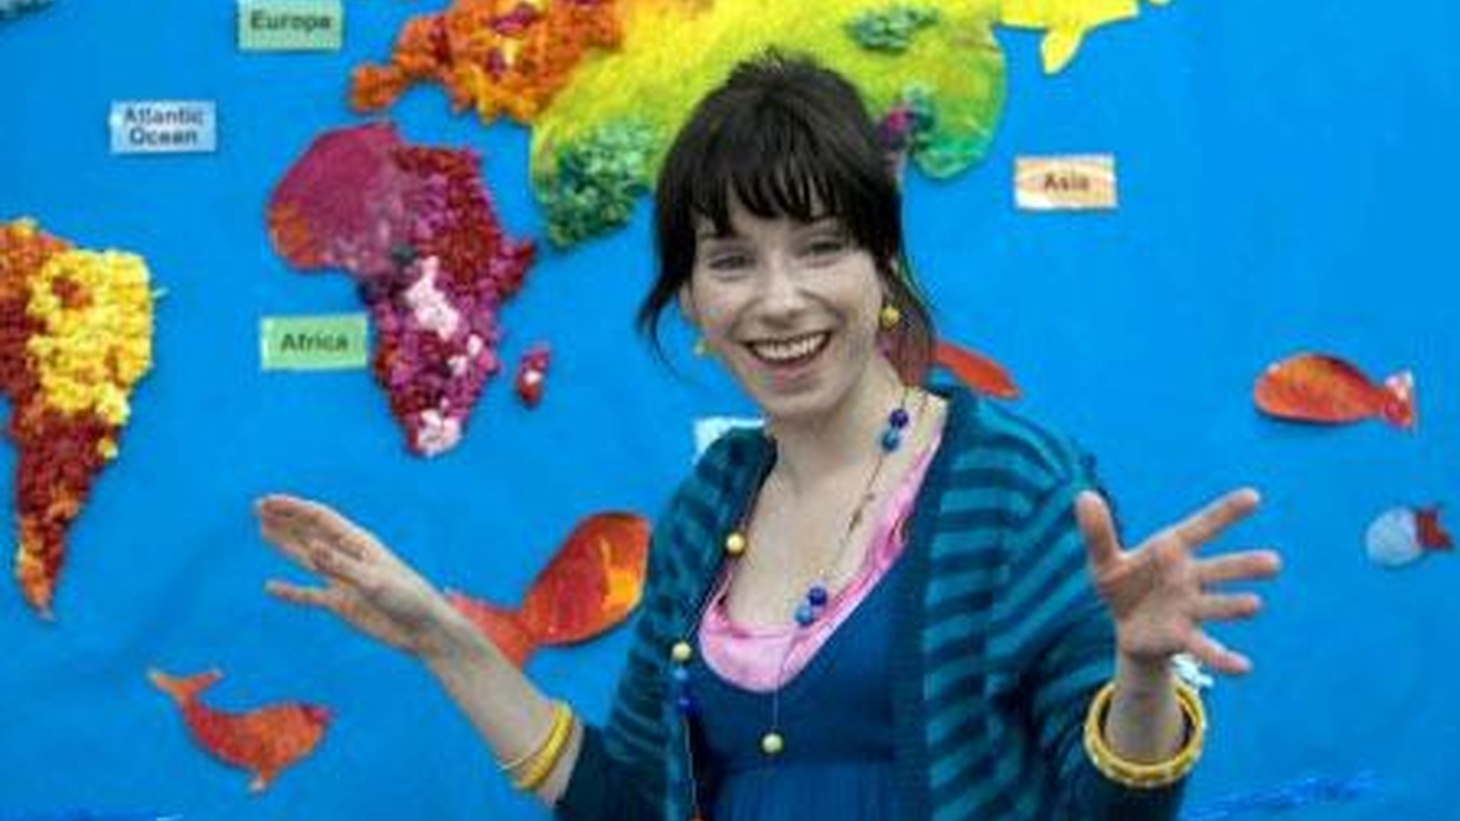 Actress Sally Hawkins has had quite a year, stemming from her third collaboration with writer-director Mike Leigh. Happy-Go-Lucky is bright-eyed comedy-drama that's won her audiences and accolades.